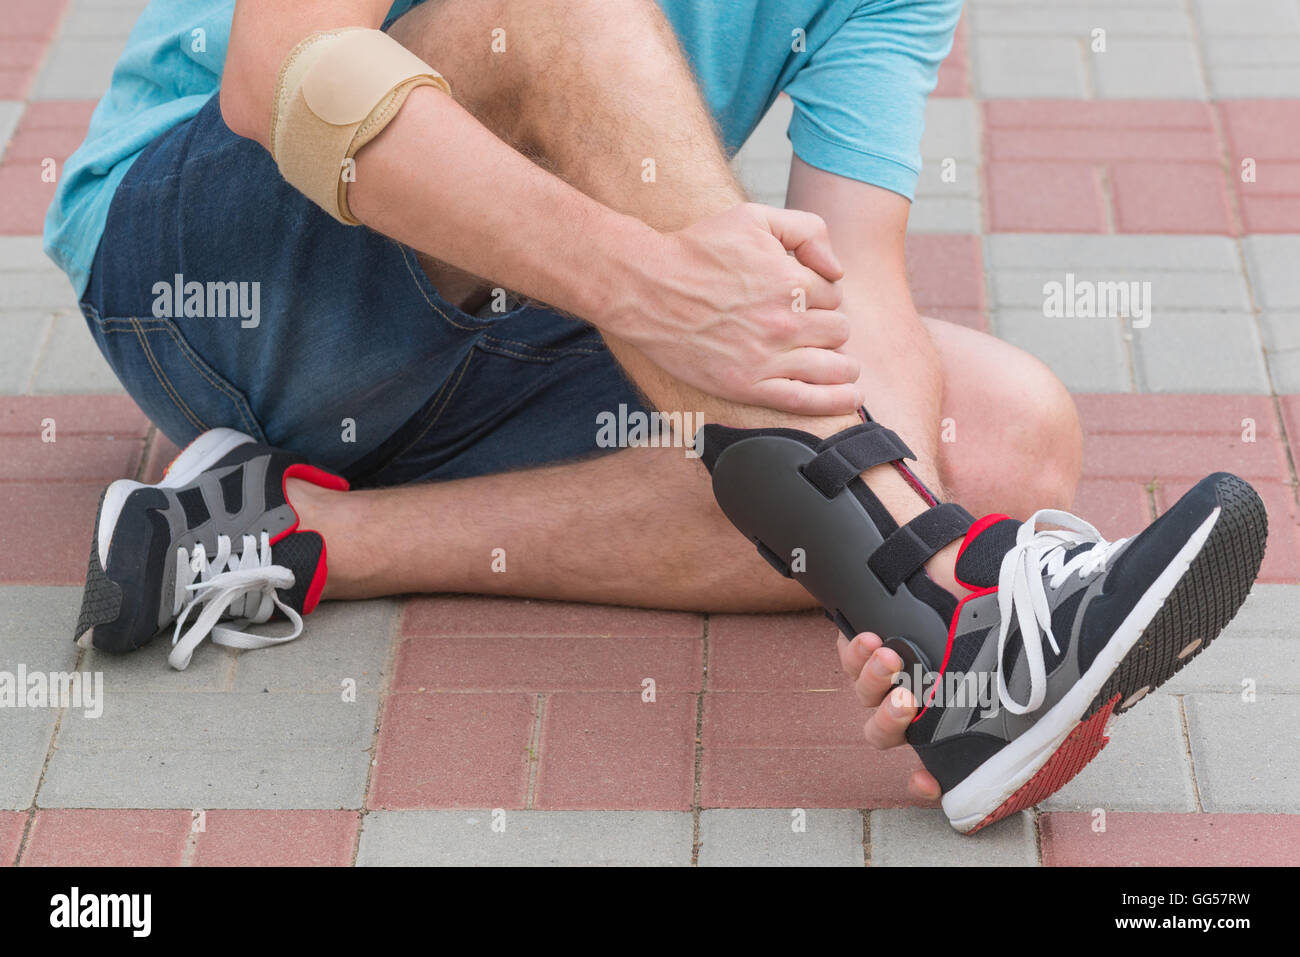 Man in athletic sneakers sitting on the street and checking his ankle orthosis or brace - Stock Image